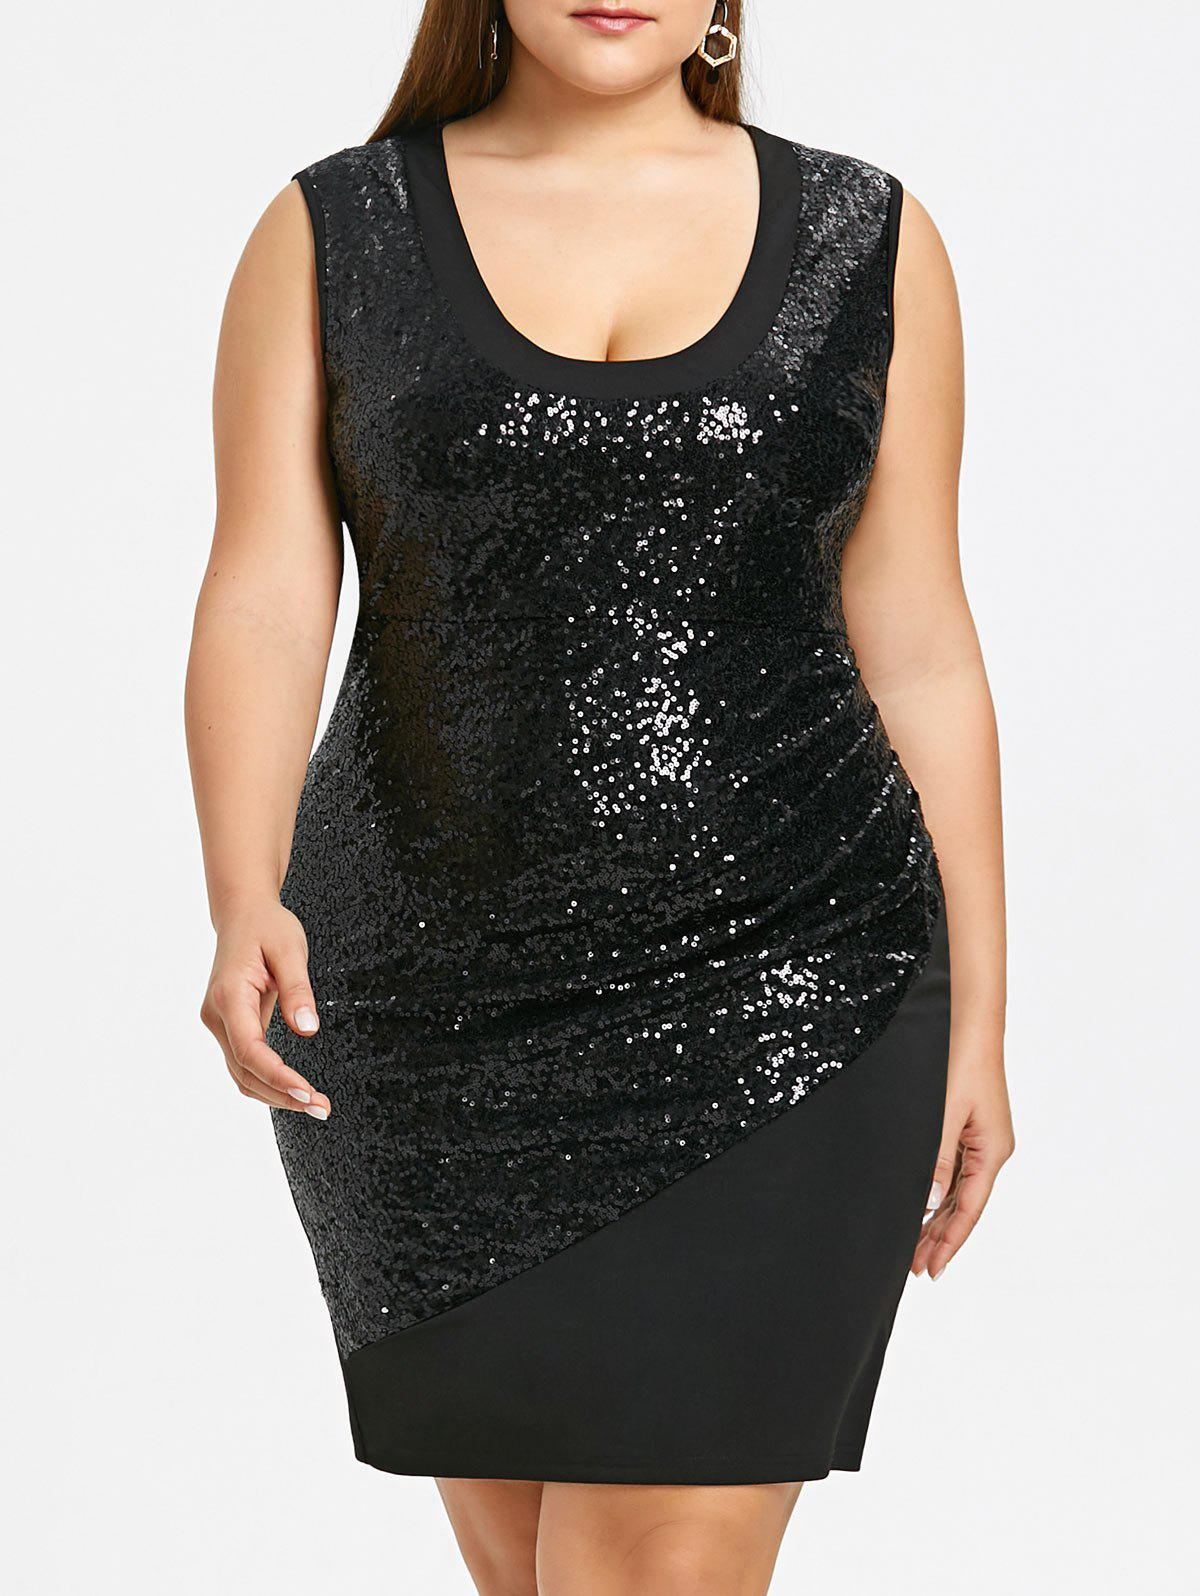 Plus Size Sleeveless Glitter Sequins Sheath Dress